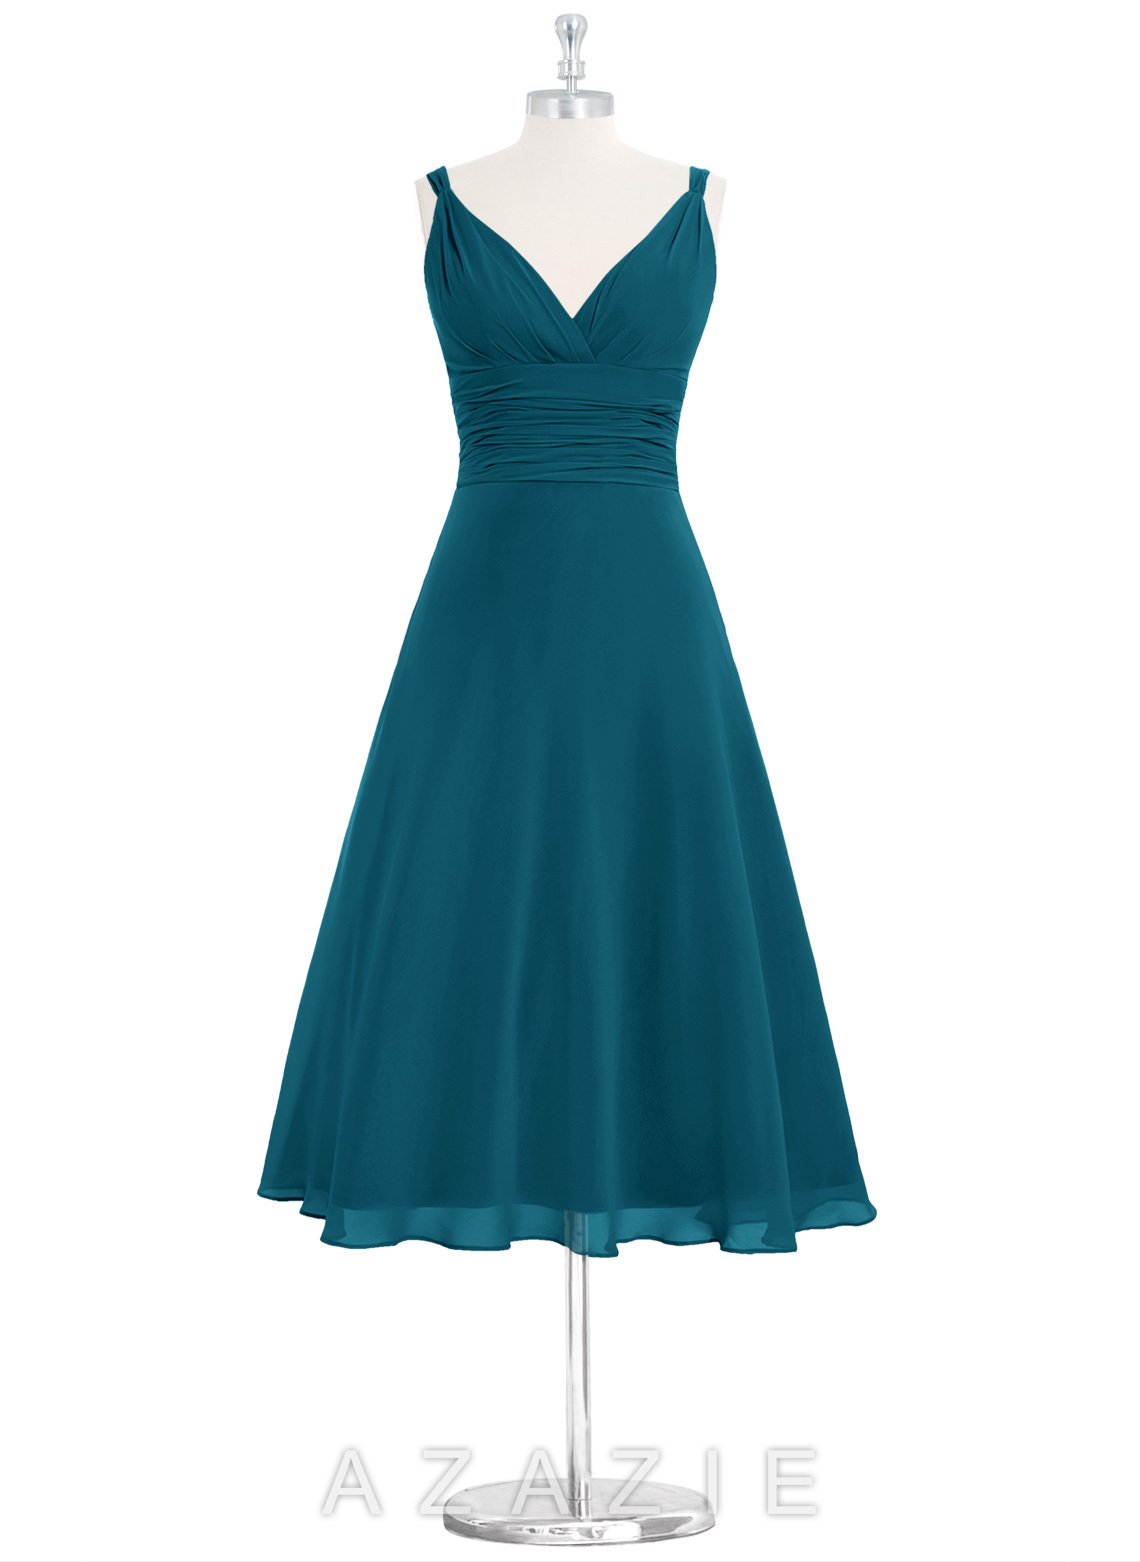 Azazie Jayla Bridesmaid Dresses